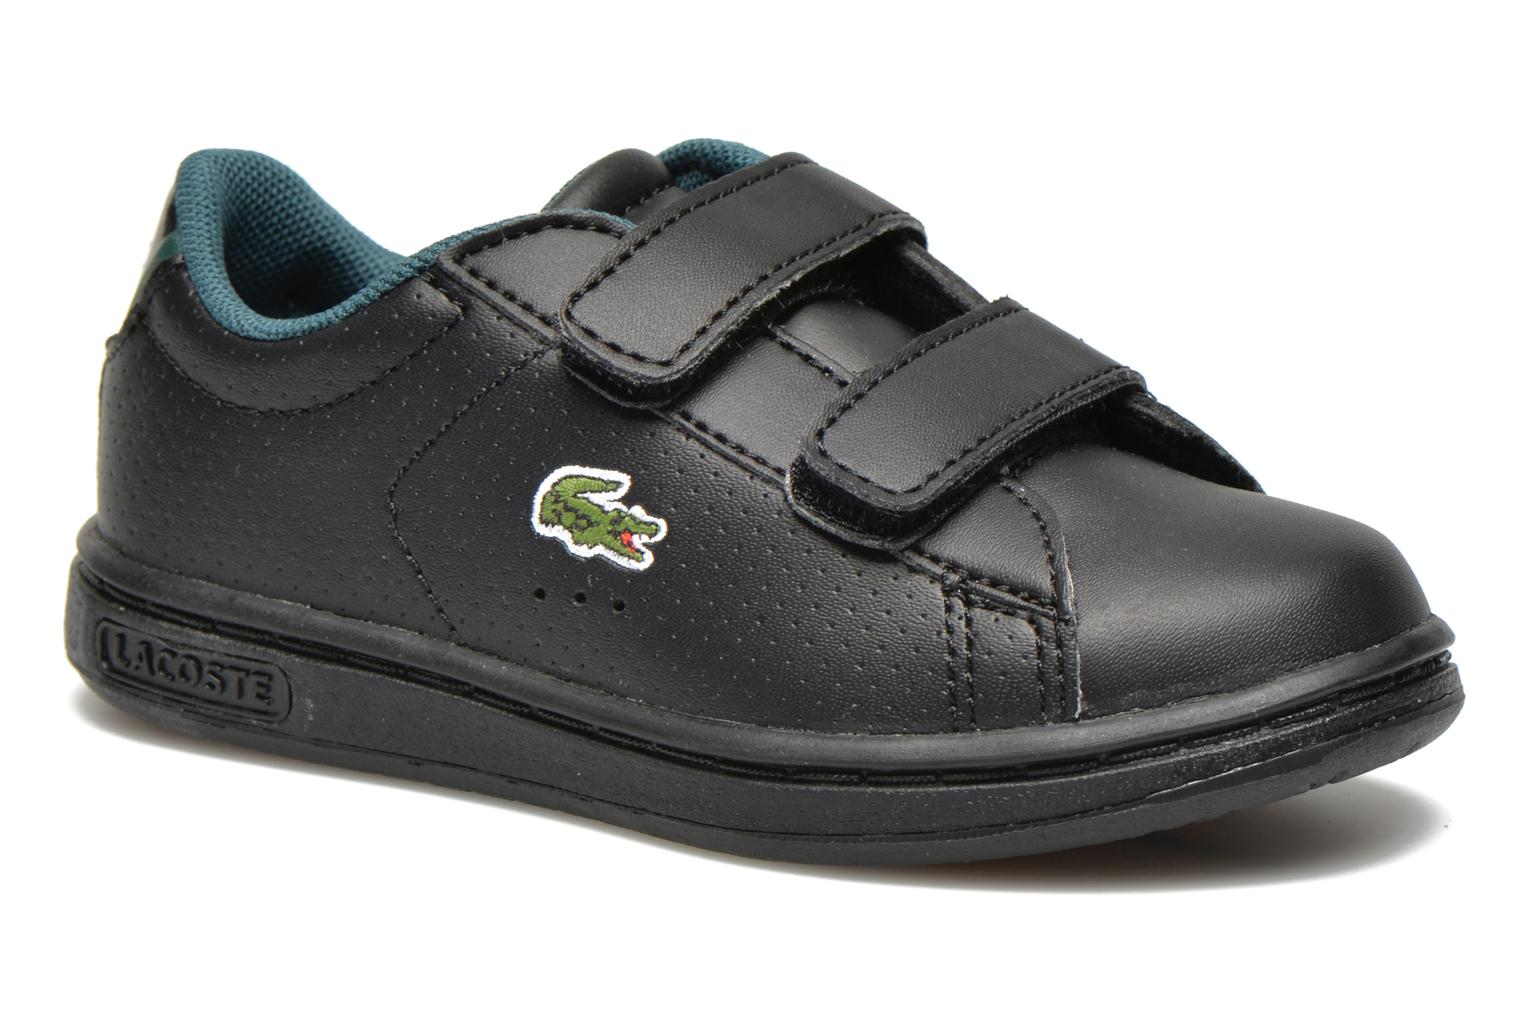 Sneakers Carnaby Evo Rei Spi by Lacoste